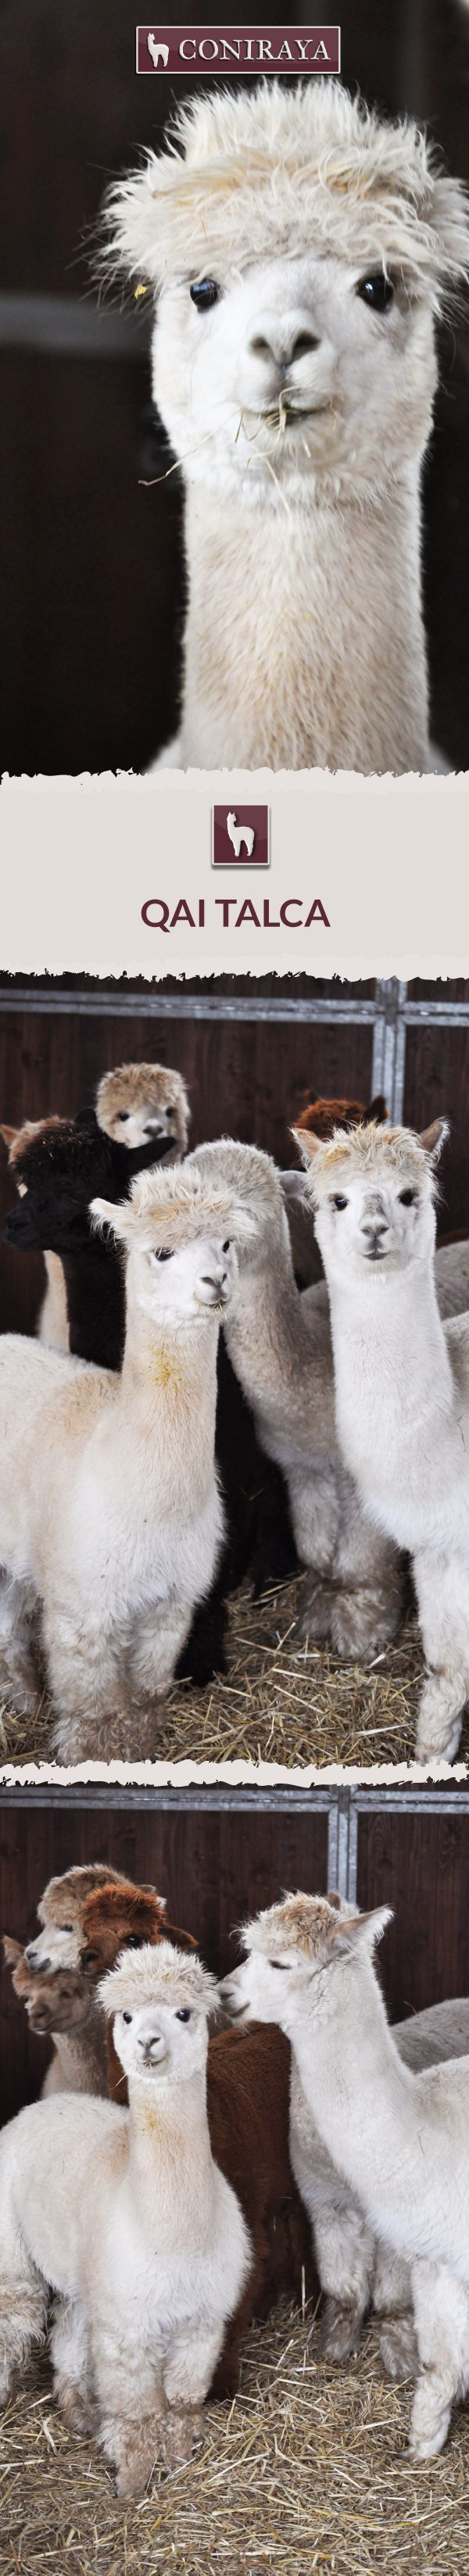 Meet Coniraya - QAI Talca. This Alpaca was born in 2013 and its fiber is in color: Medium Fawn. Check out more details on our site!